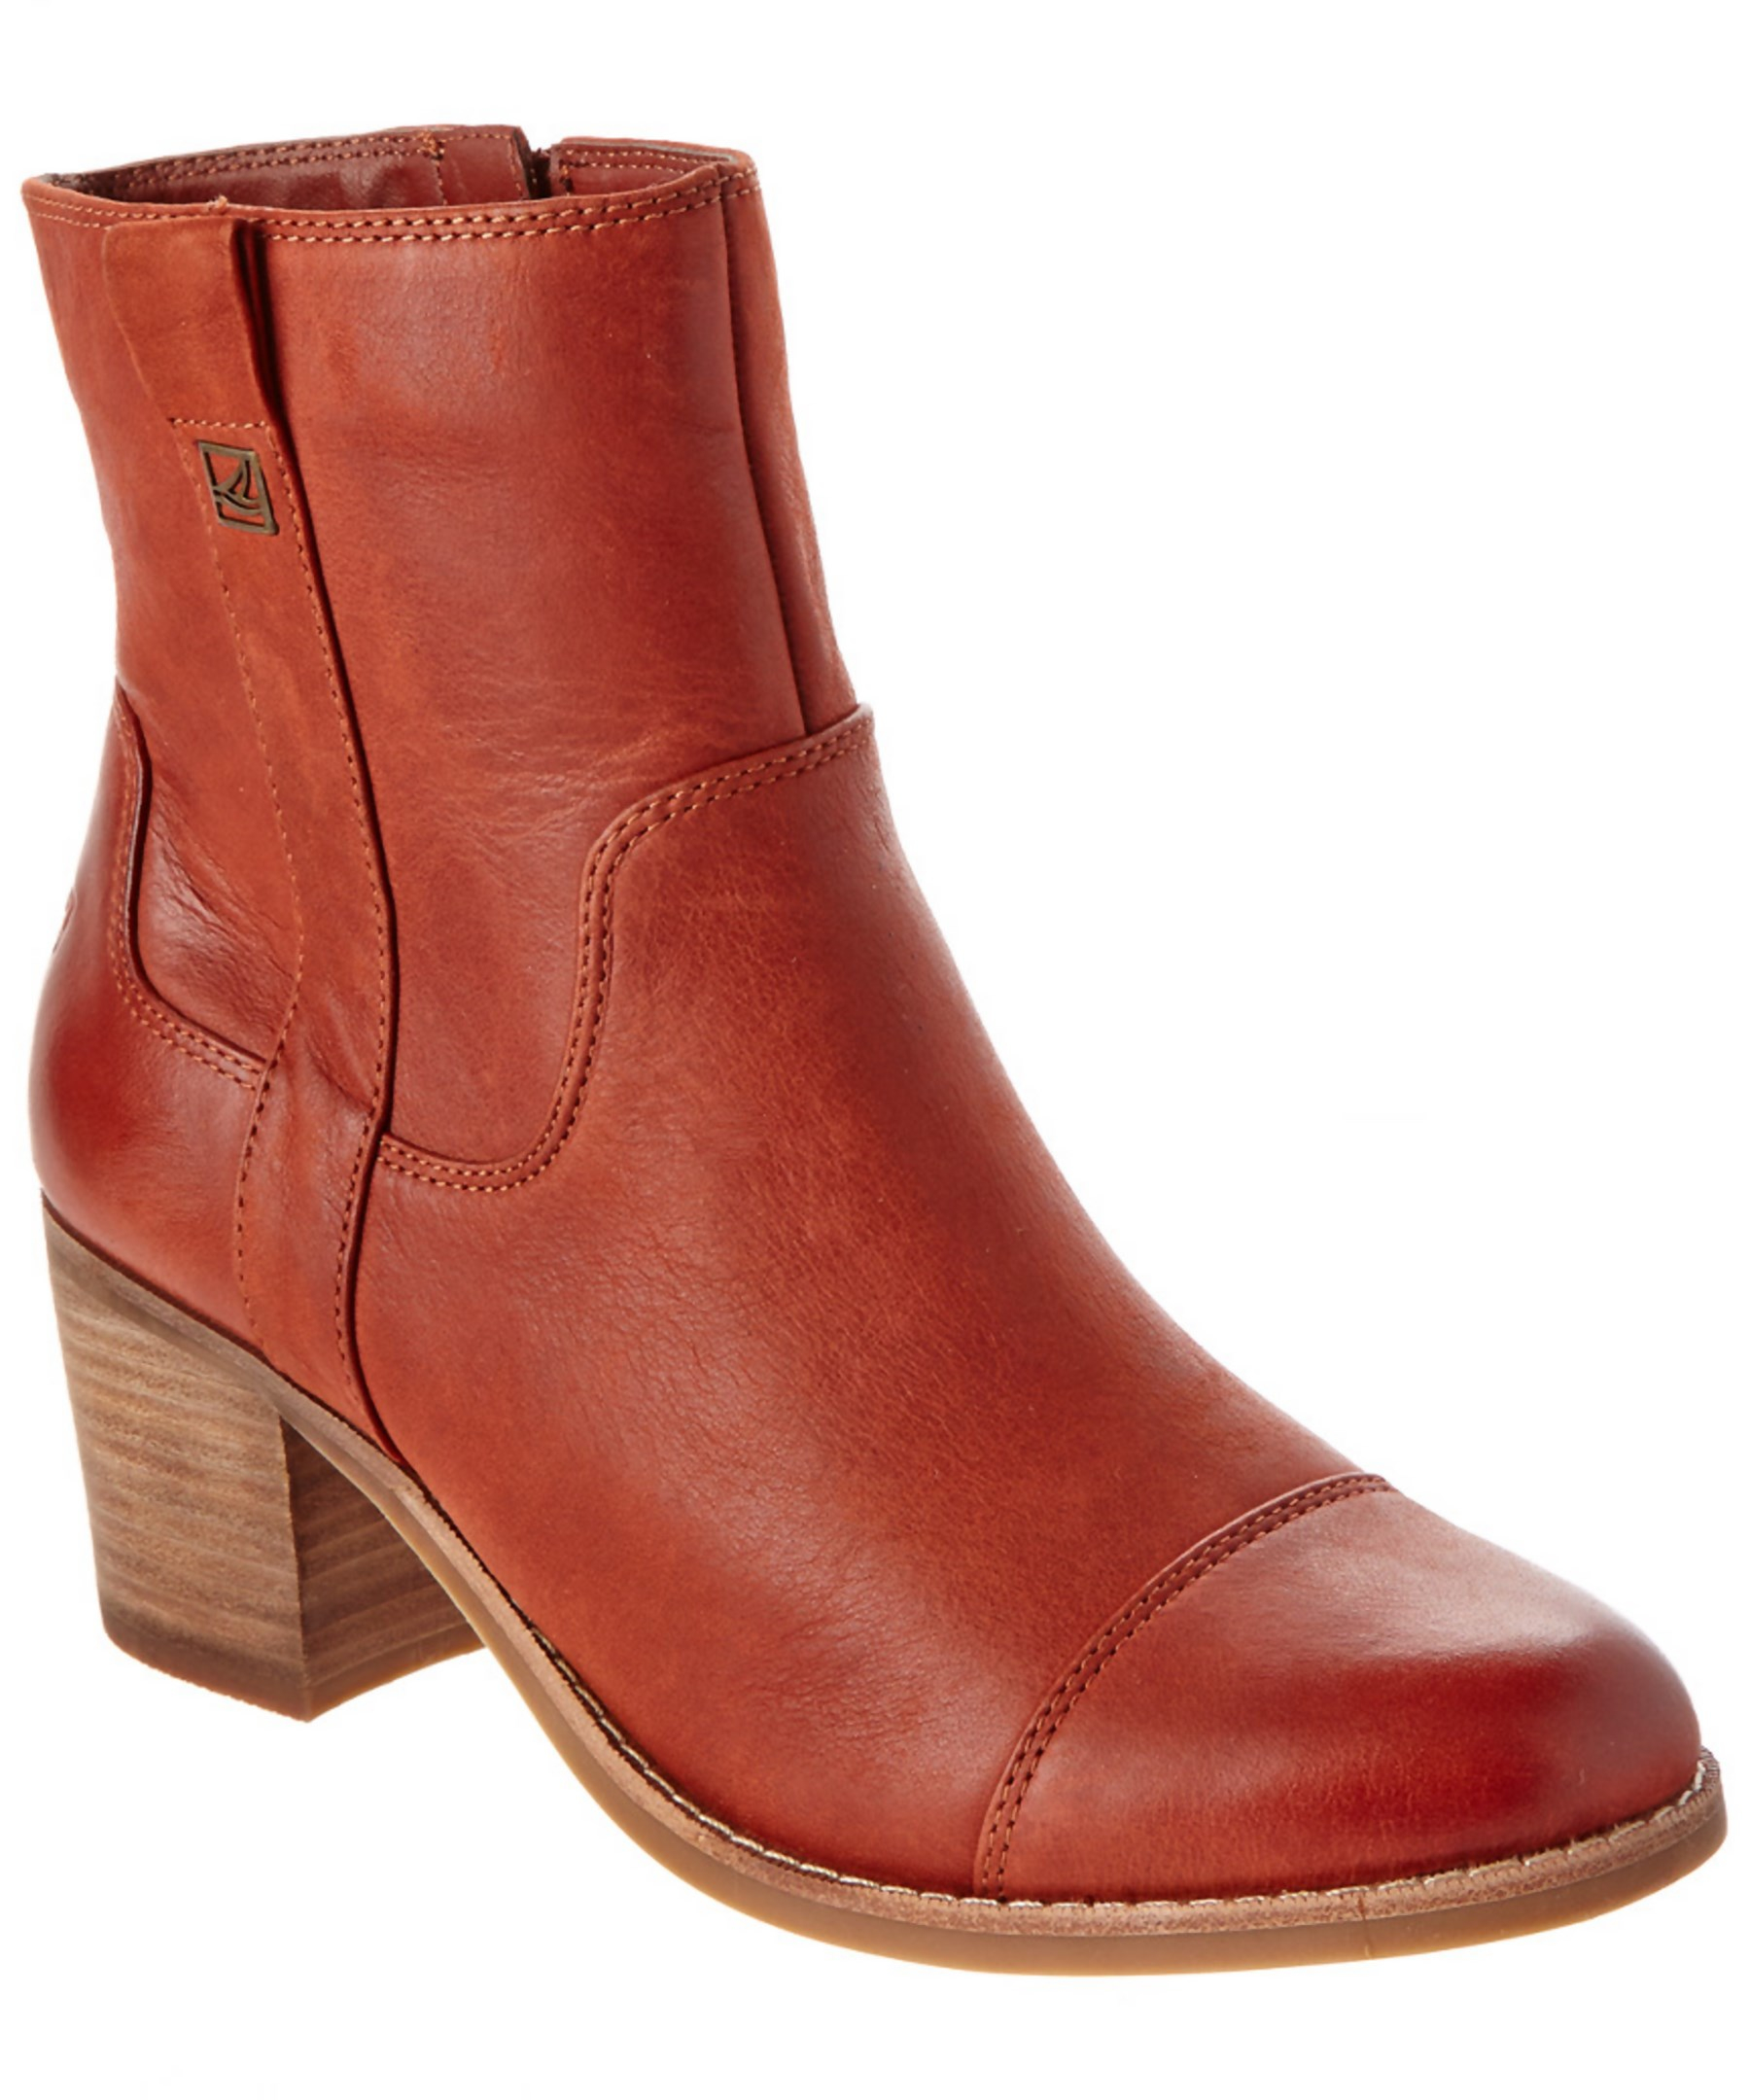 sperry top sider helena leather ankle boot in brown lyst